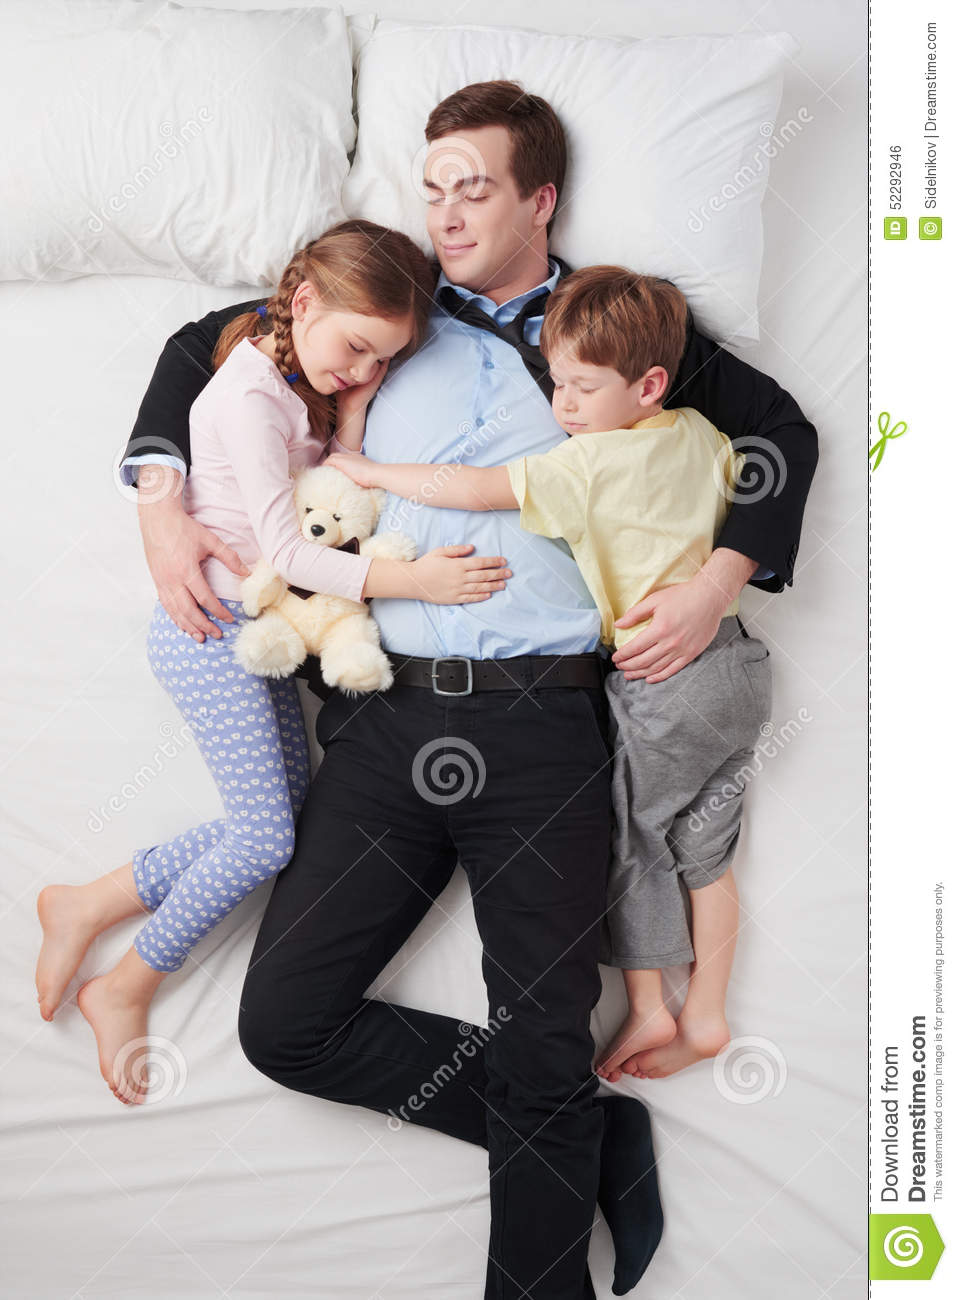 Sleeping mother fucked by son